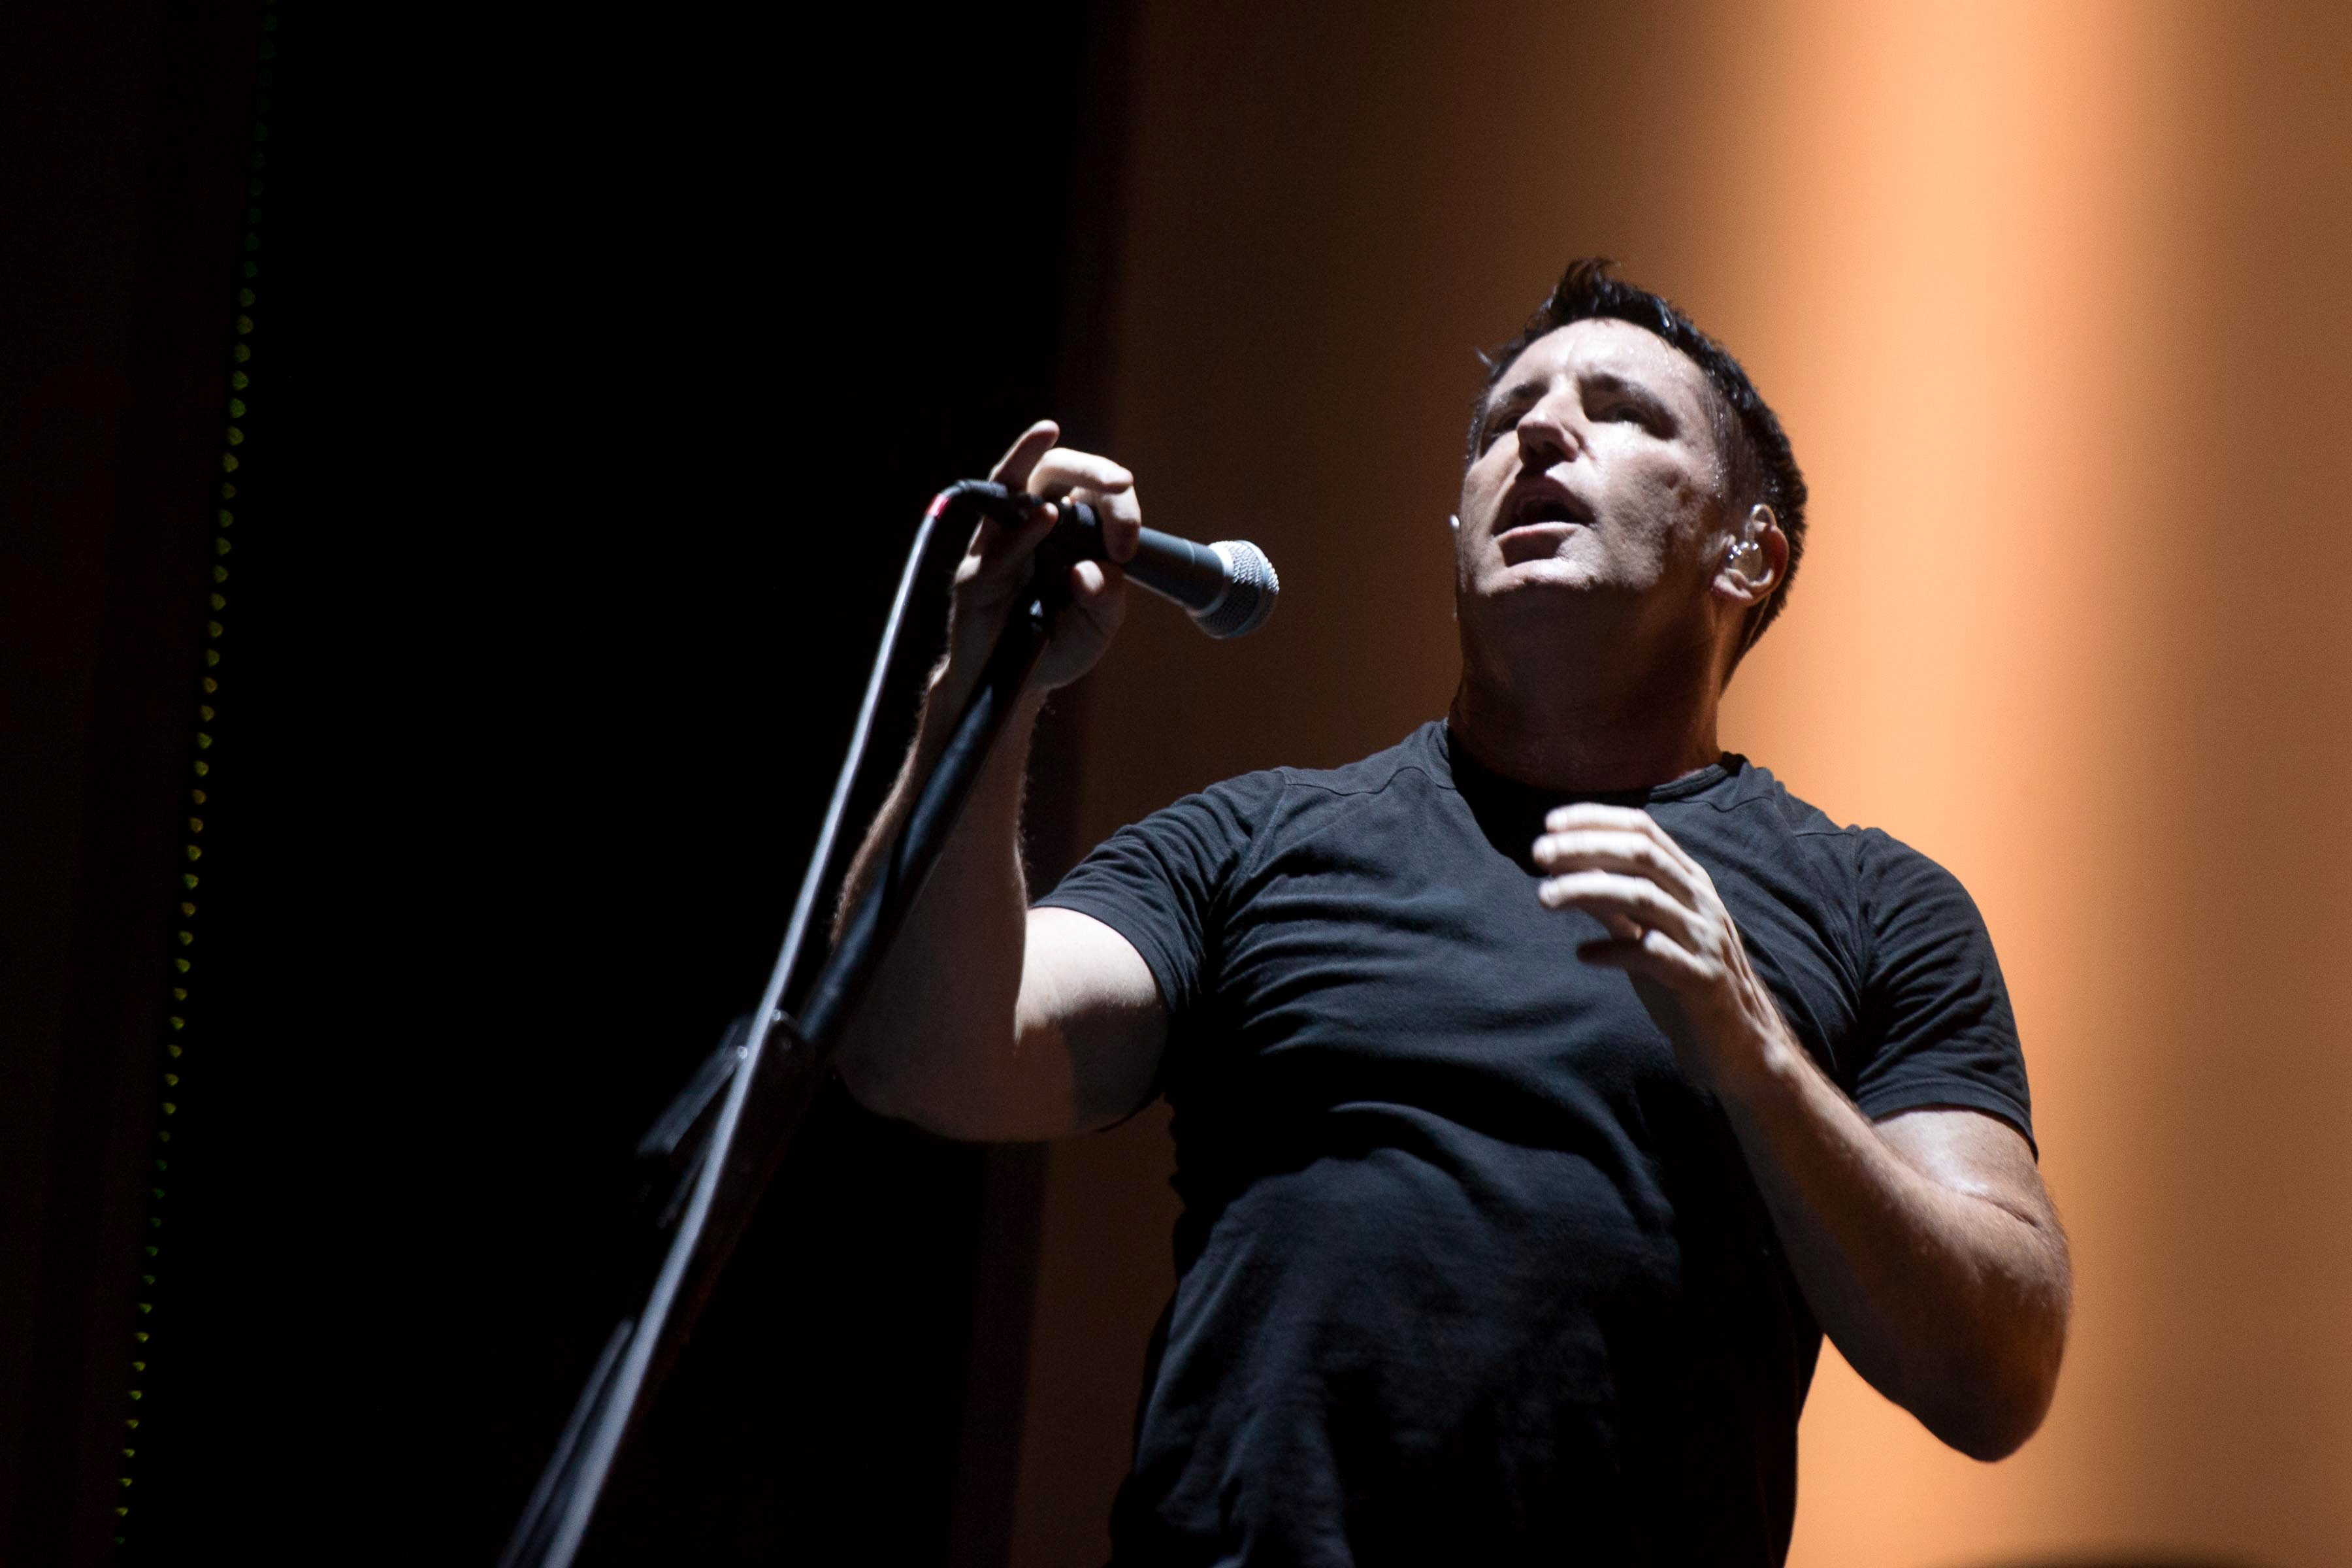 Hear Nine Inch Nails\' Unsettling New Song \'This Isn\'t the Place ...